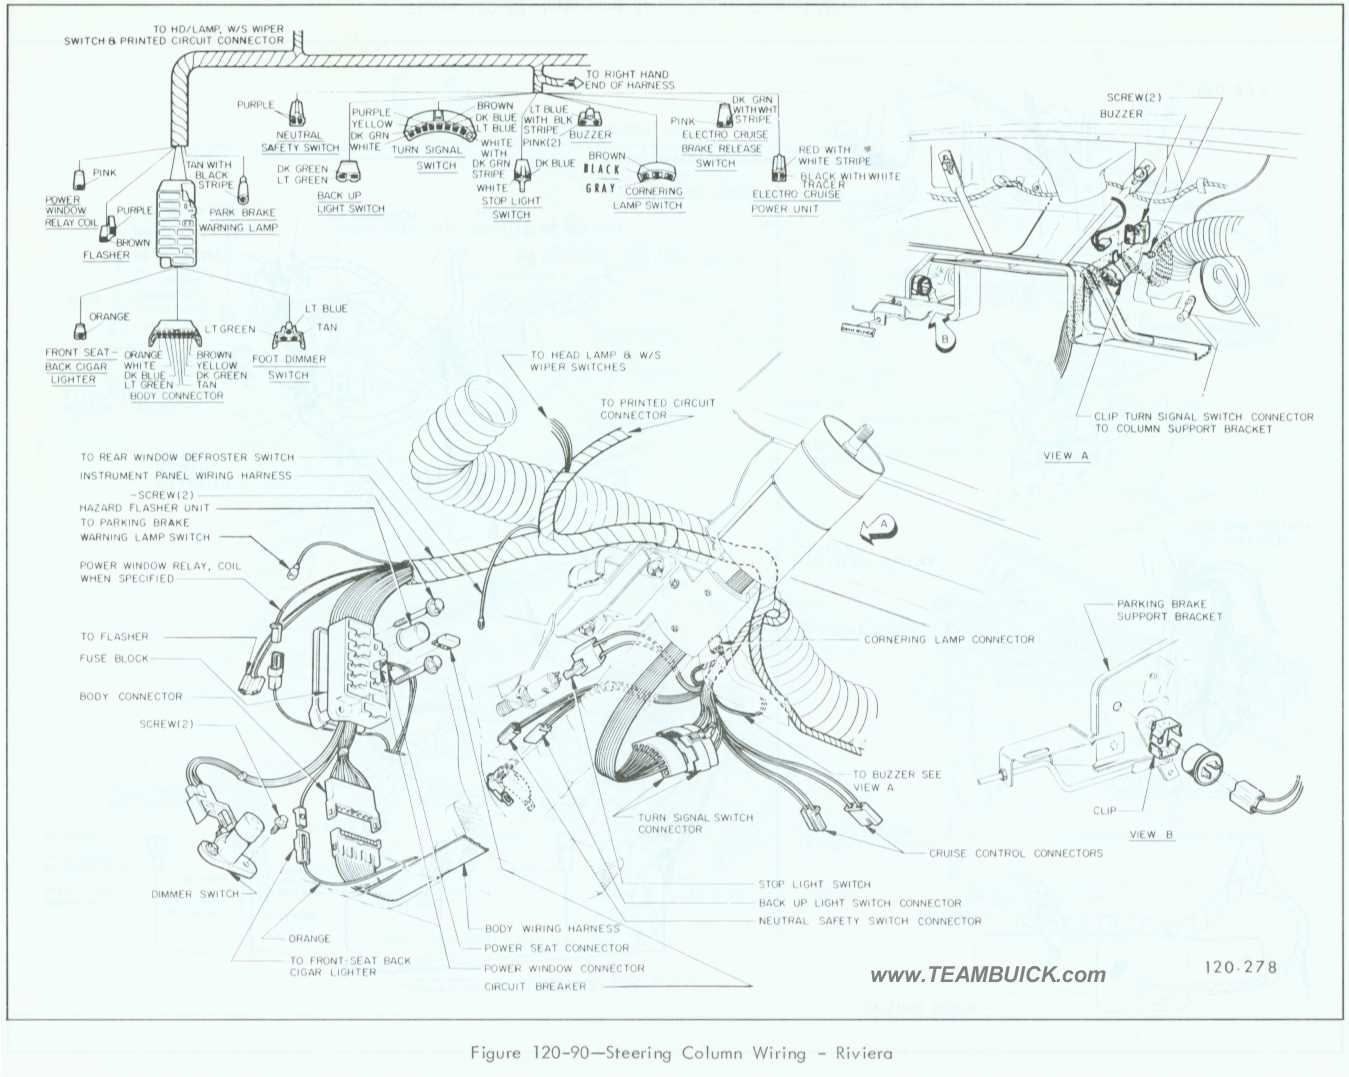 67 El Camino Used Parts on 1969 buick skylark wiring diagram